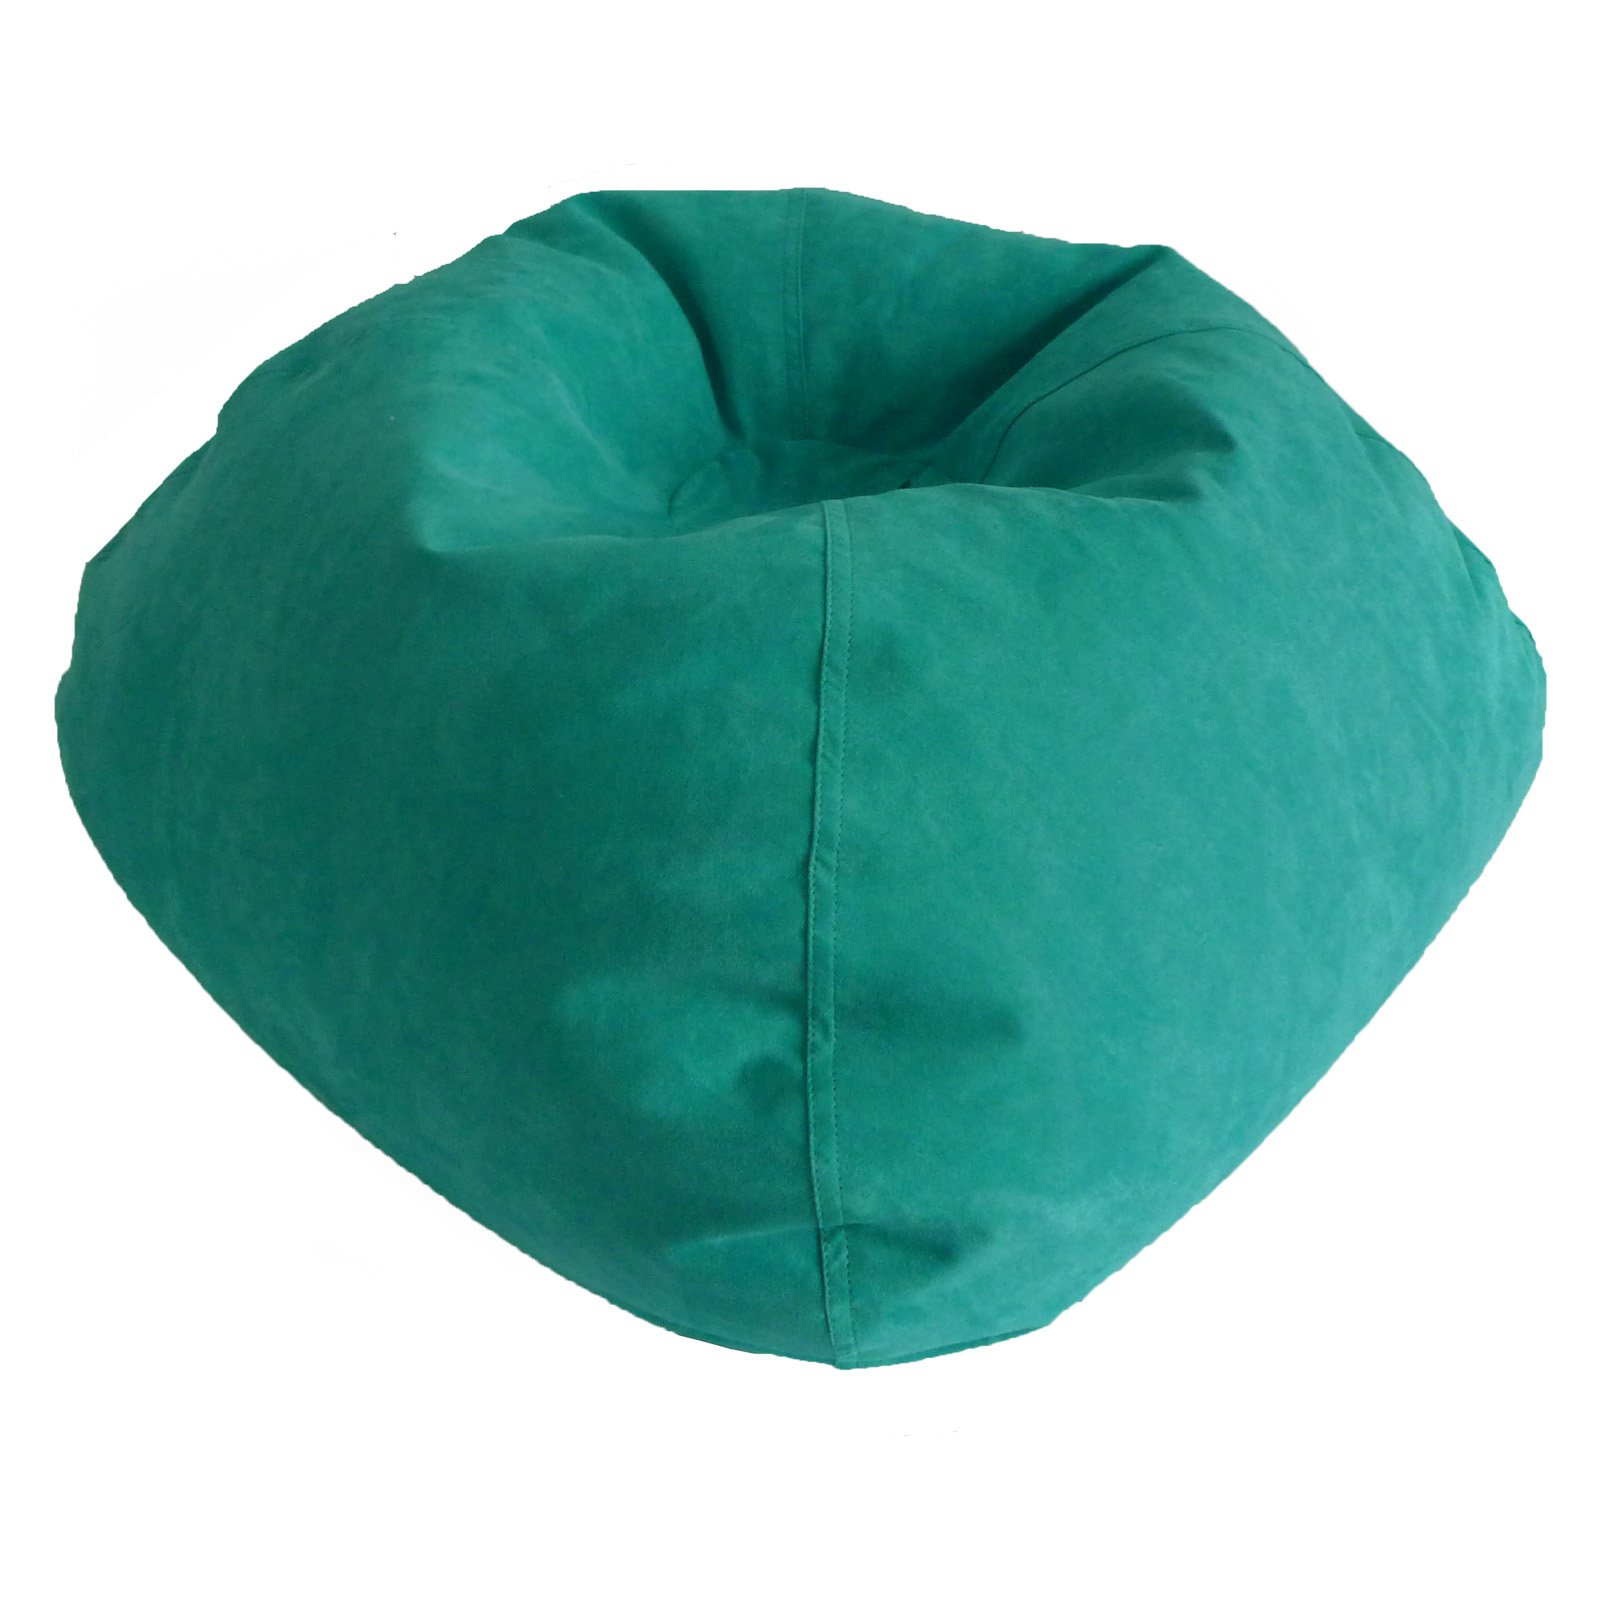 Delicieux Large Microsuede Bean Bag, Available In Multiple Colors   Walmart.com